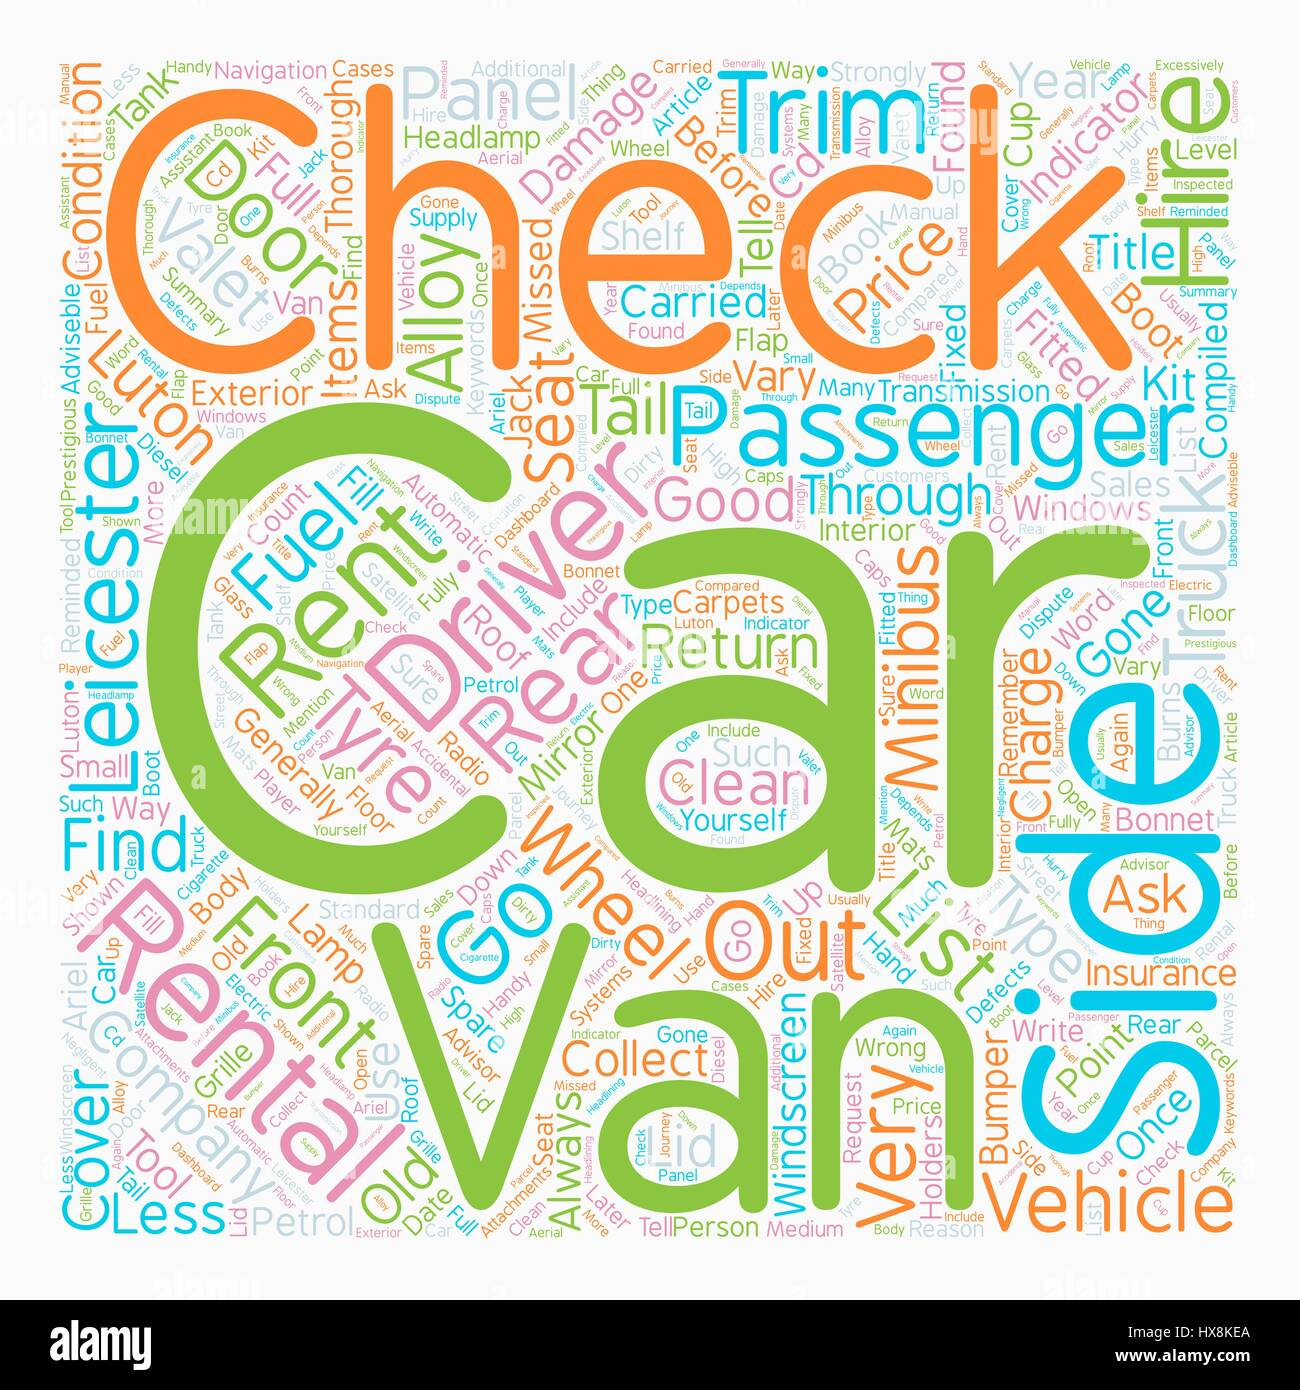 Checks Carried Out By Rental Companies Text Background Wordcloud Concept -  Stock Image